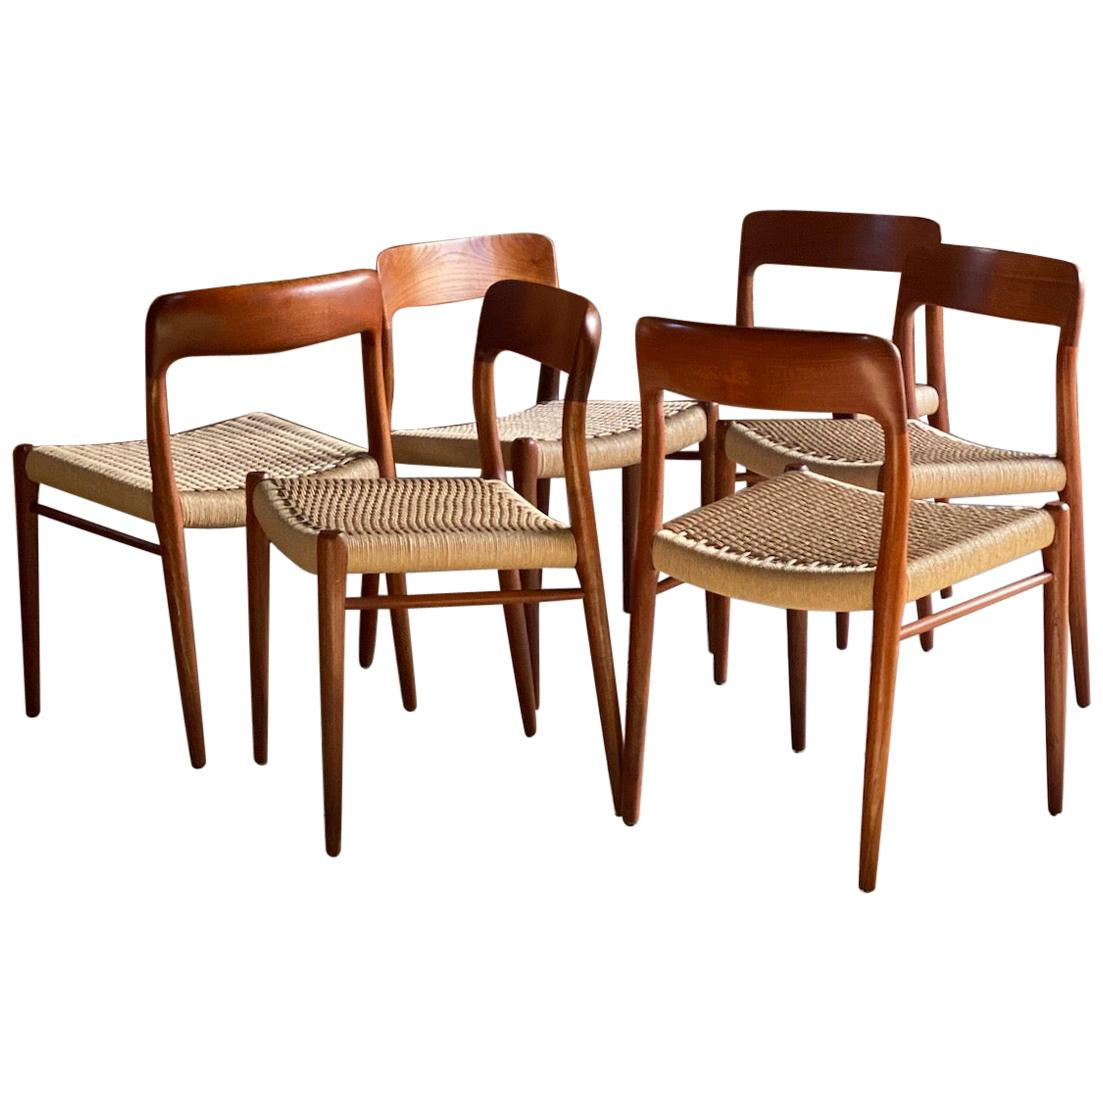 Niels Otto Moller Model 75 Dining Chairs Set of 6 JL Moller Møbelfabrik Danish